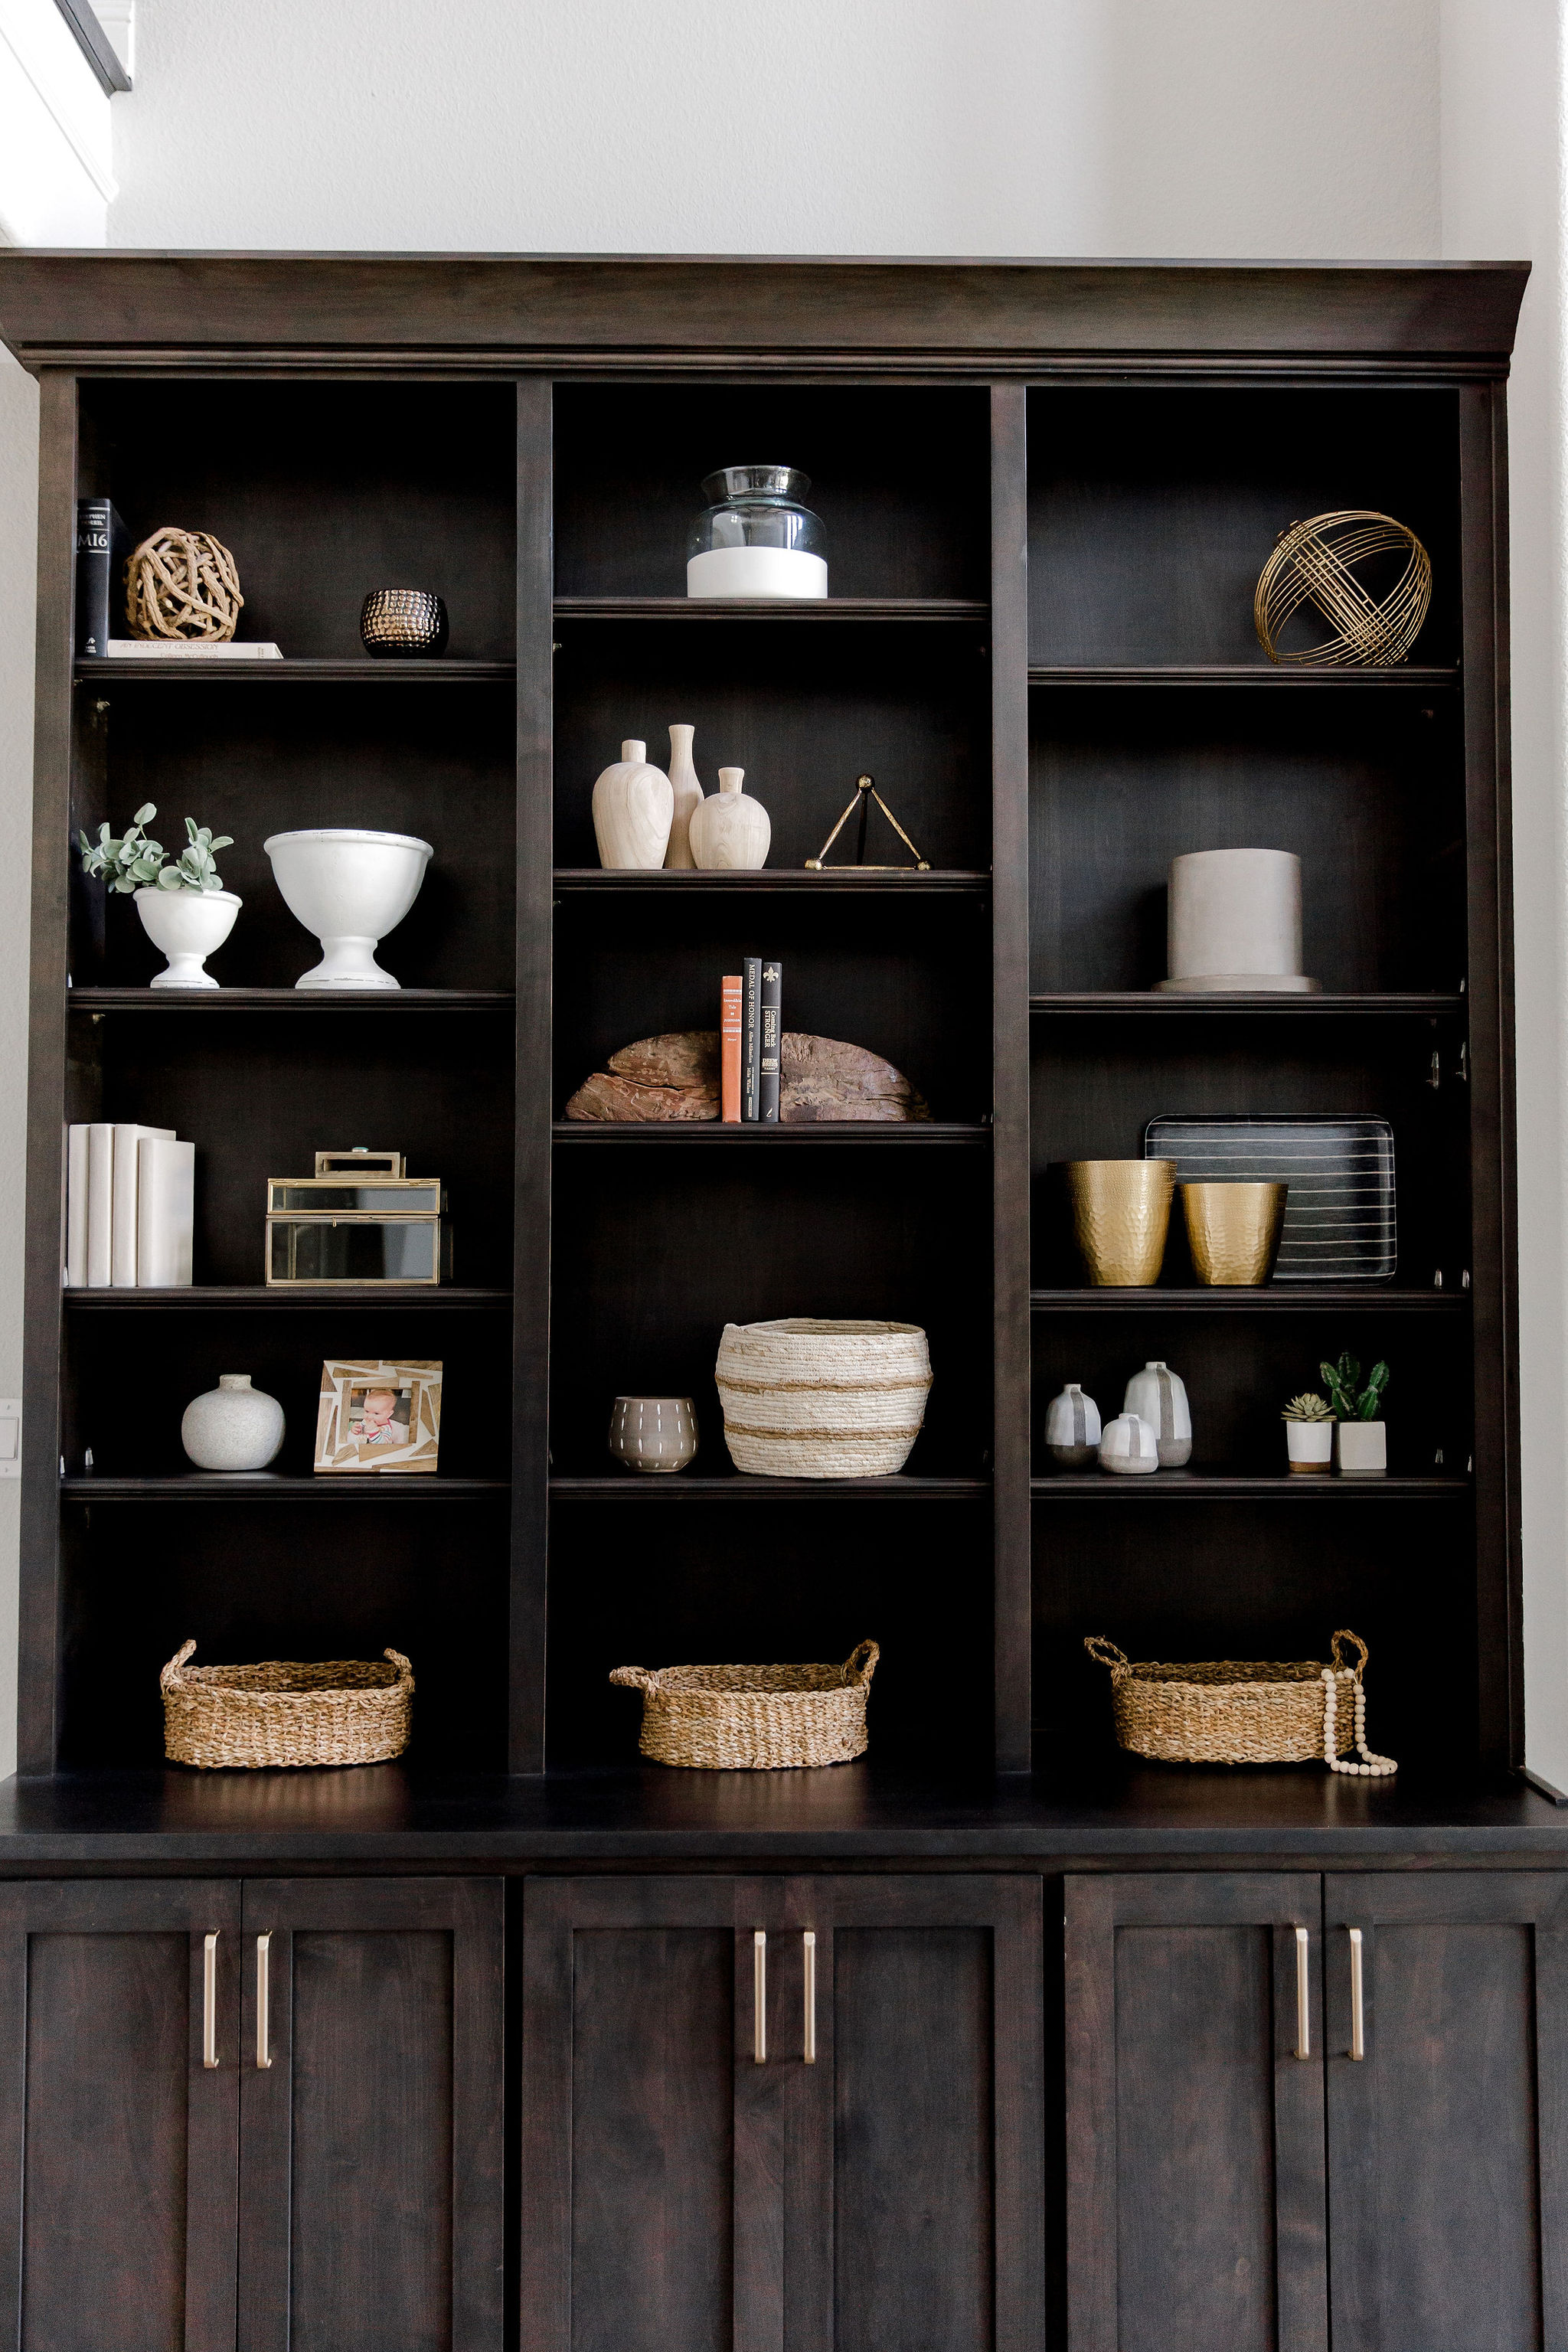 Shelf styling with neutral decor by Laur